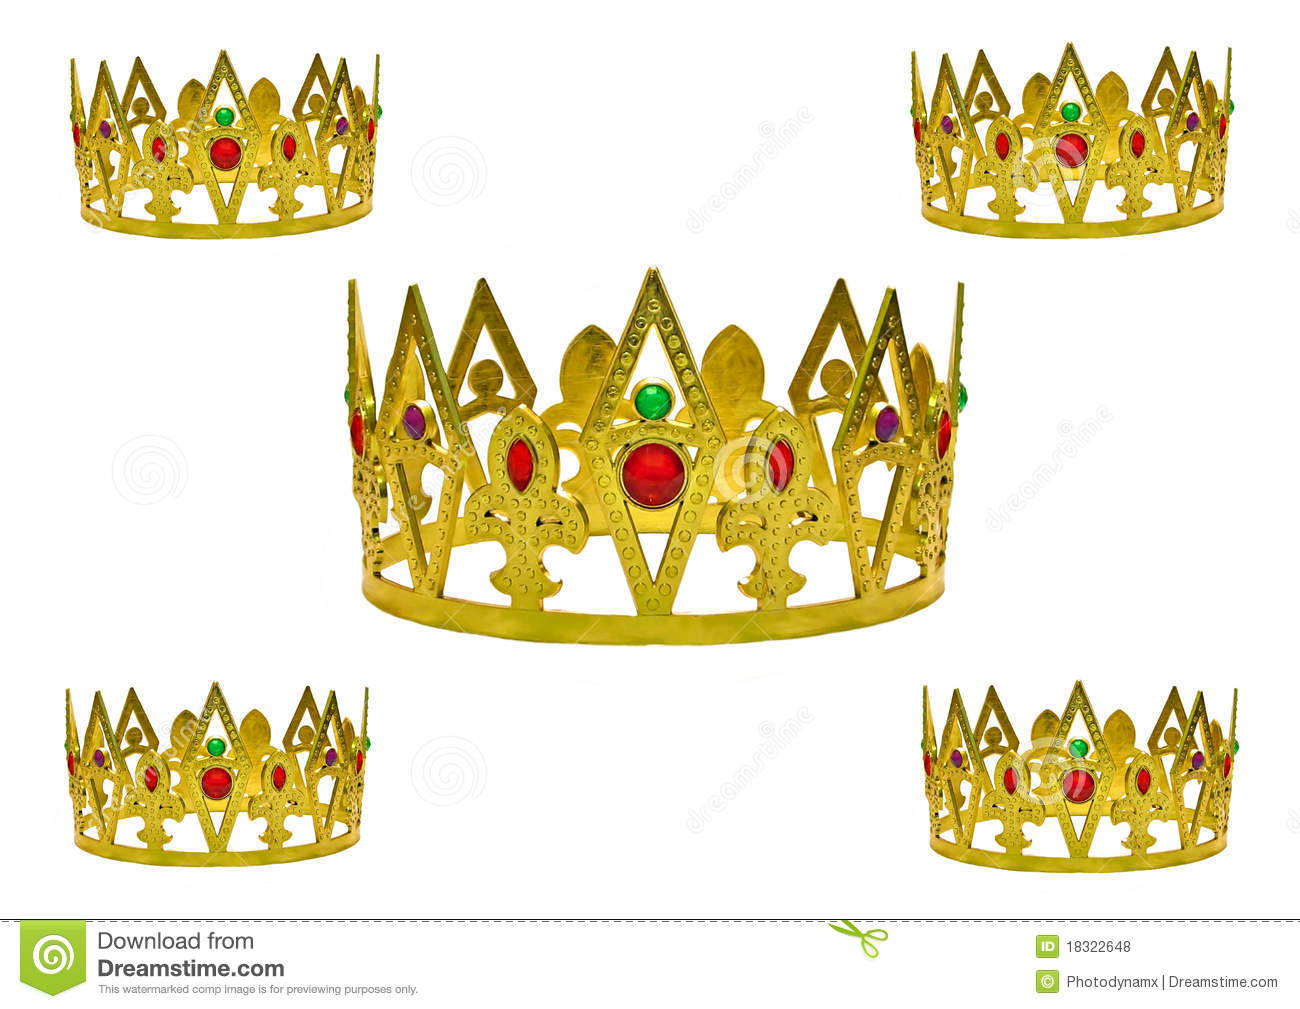 crown king christian single men In 1714, king george i re-established it as part of the christmas meal, having   the top of the pudding is a reminder of jesus' crown of thorns that he wore when  he  bachelor's button: if a single man found it, they would be stay single for the .